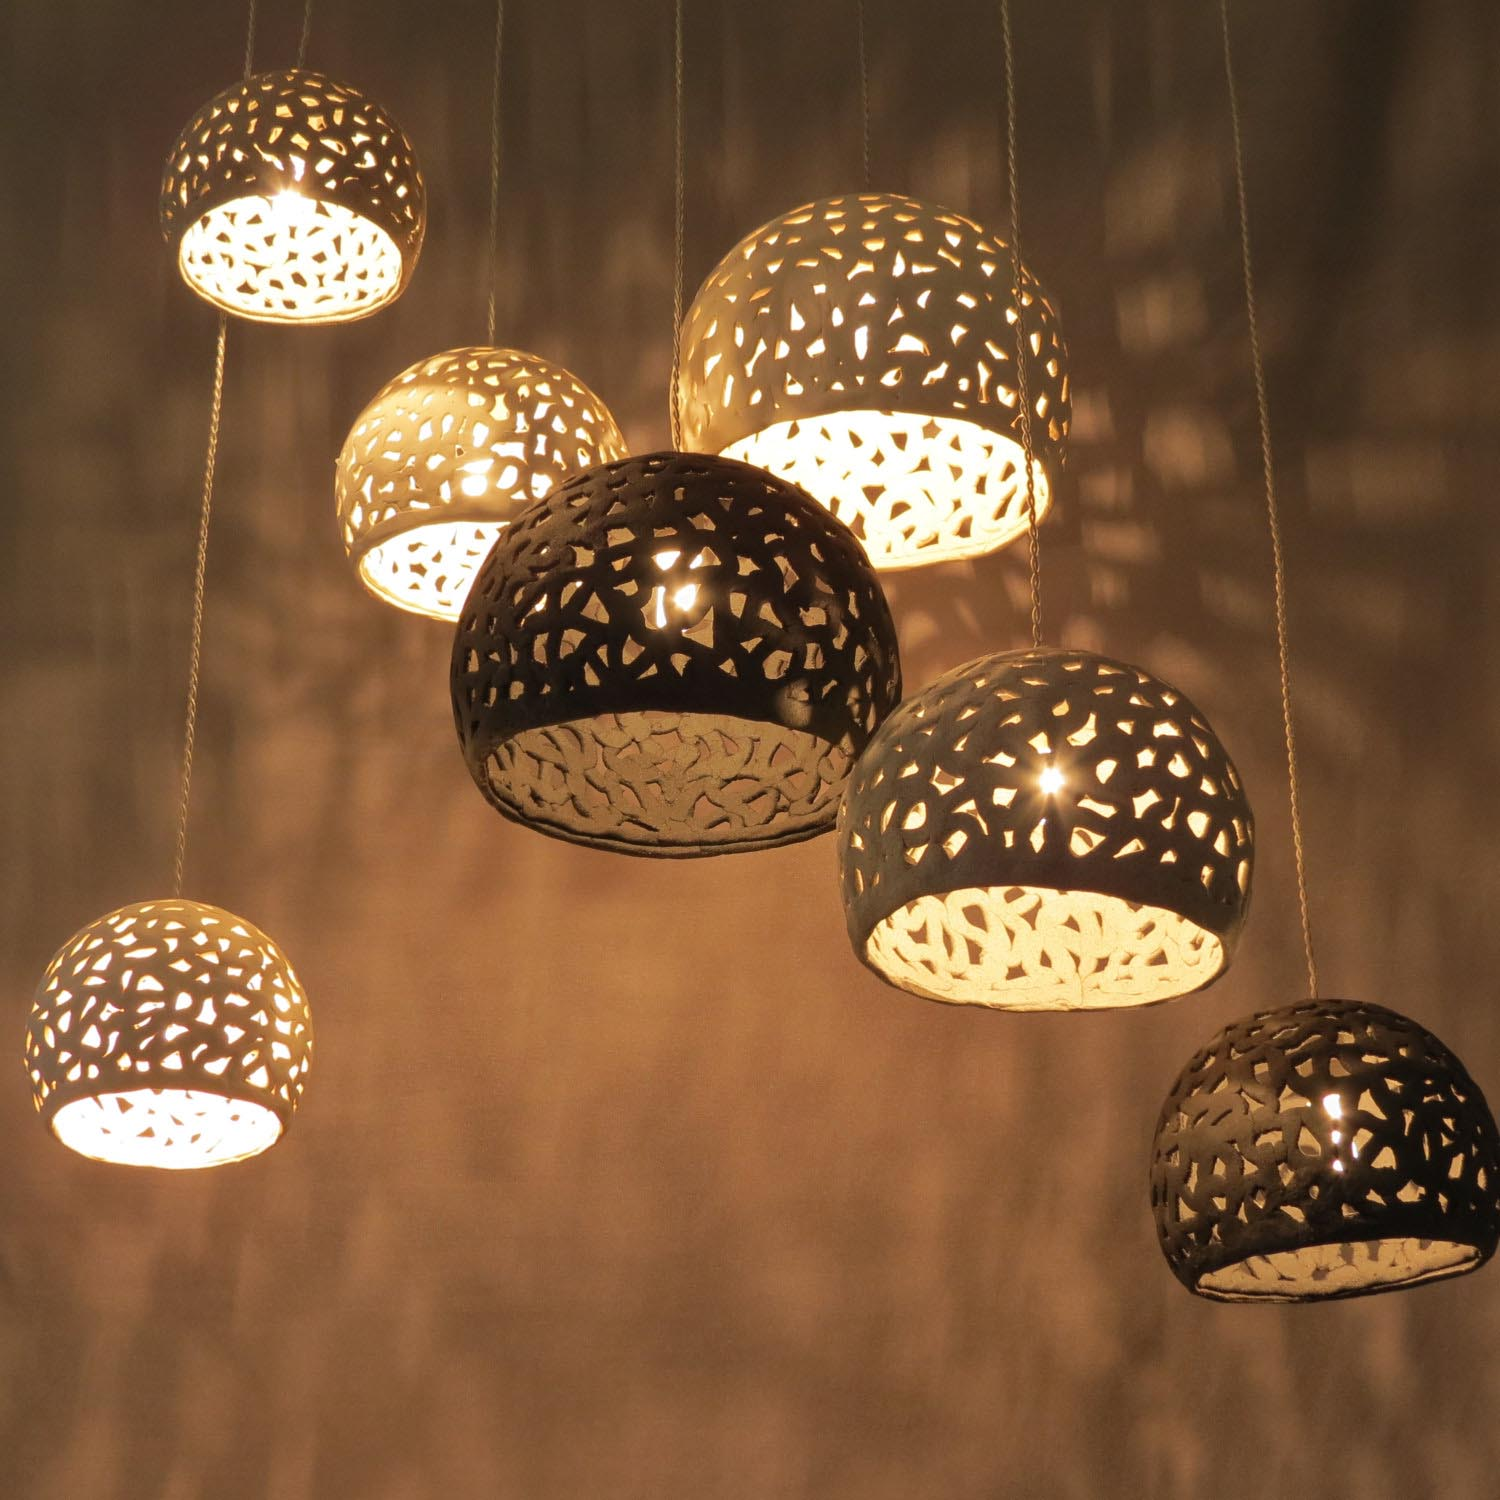 Natural Iron Light Fixtures